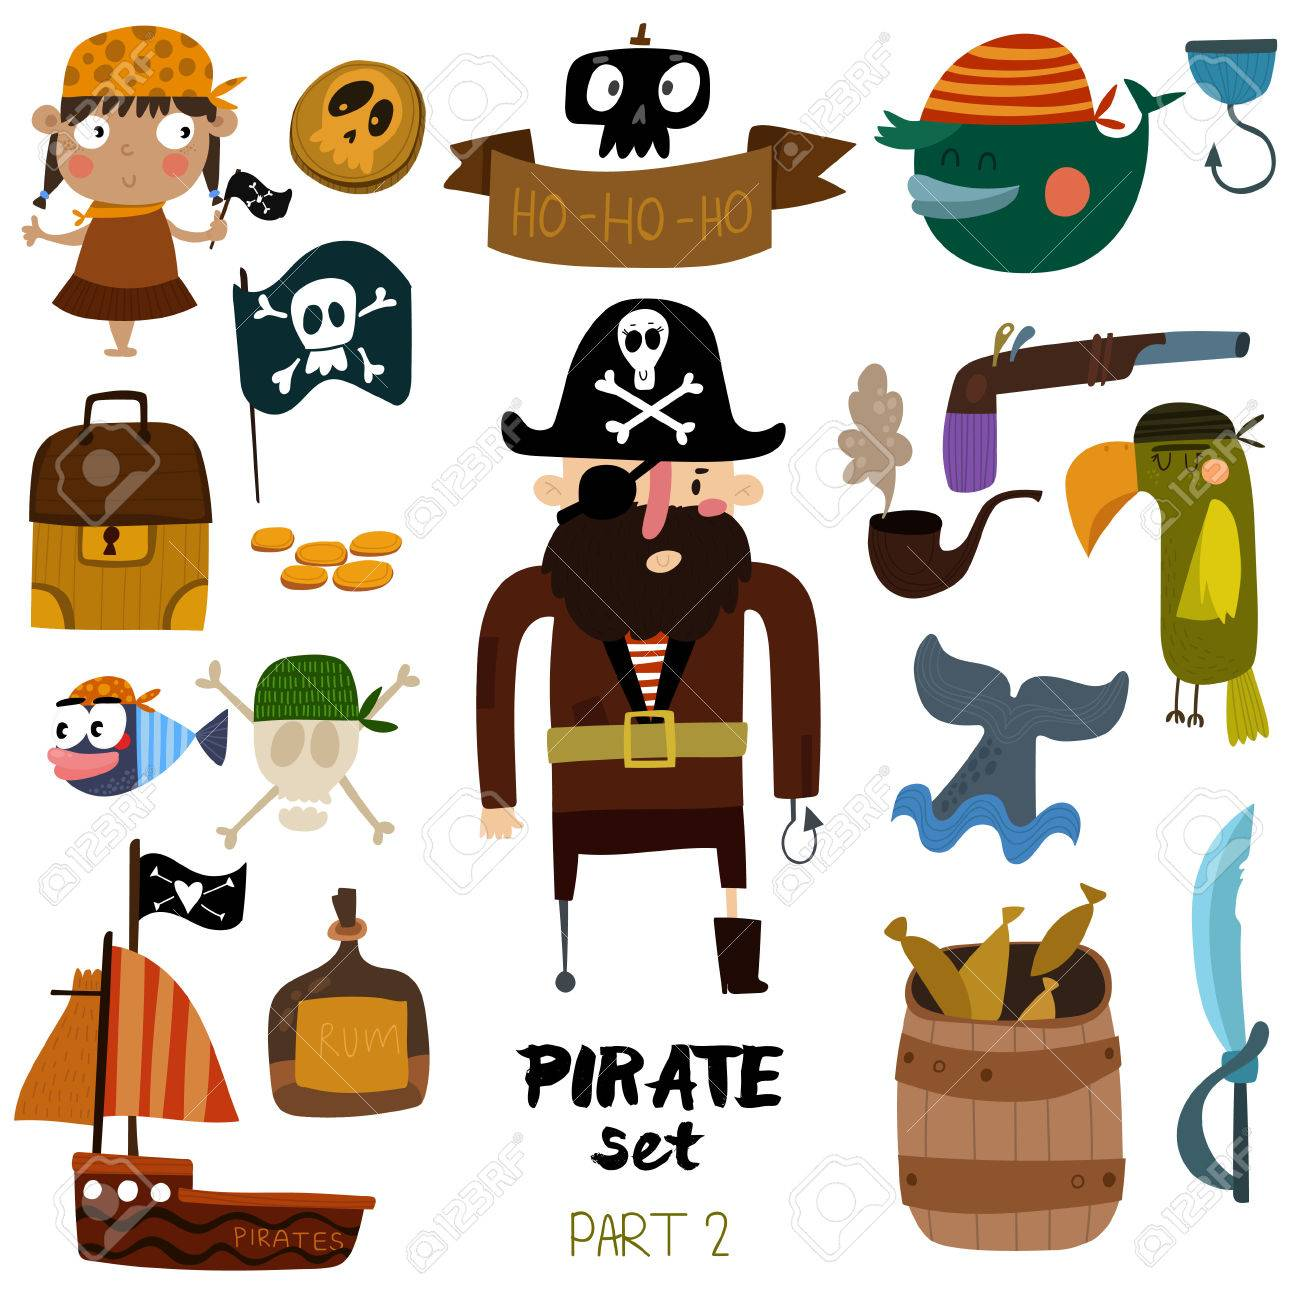 set of pirate items pirate ship skull parrot whale fish